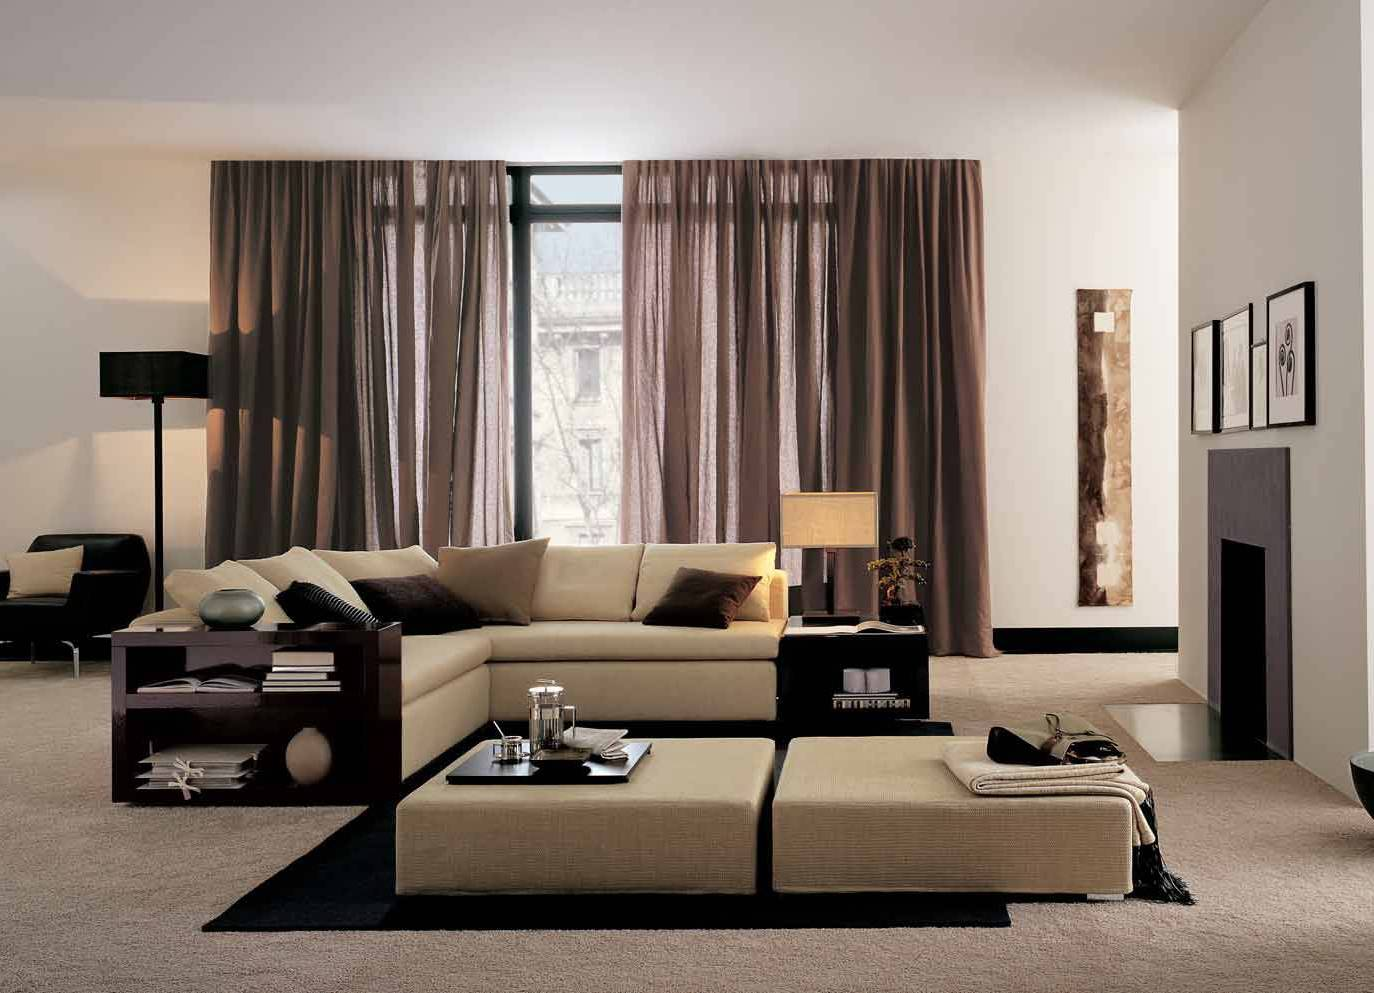 wsp czesne style w aran acji wn trz r norodno styl w. Black Bedroom Furniture Sets. Home Design Ideas